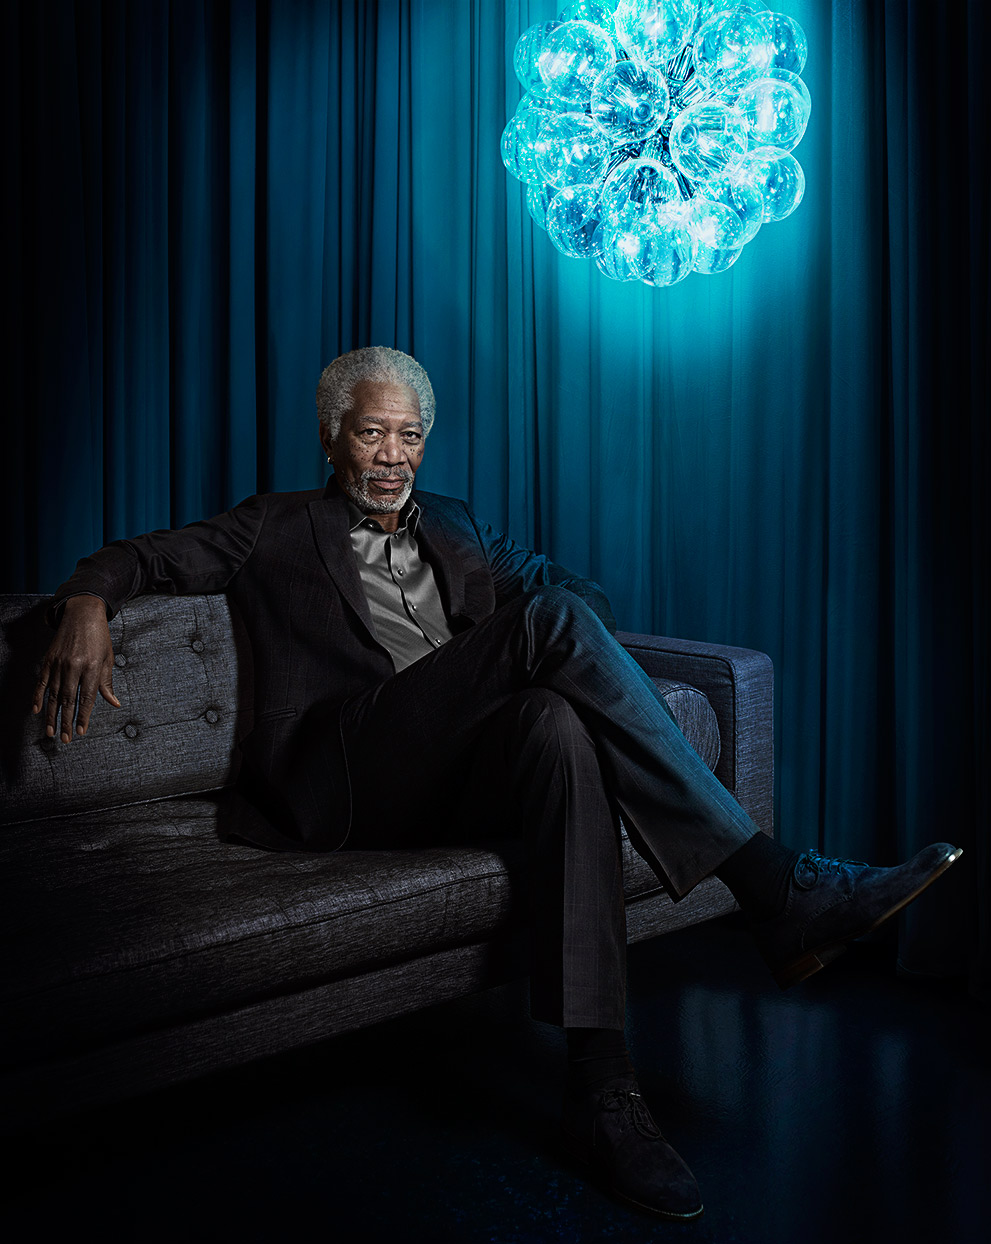 Mark DeLong - Celebrity Photographer - Morgan Freeman sitting on a brown couch in a blue room.